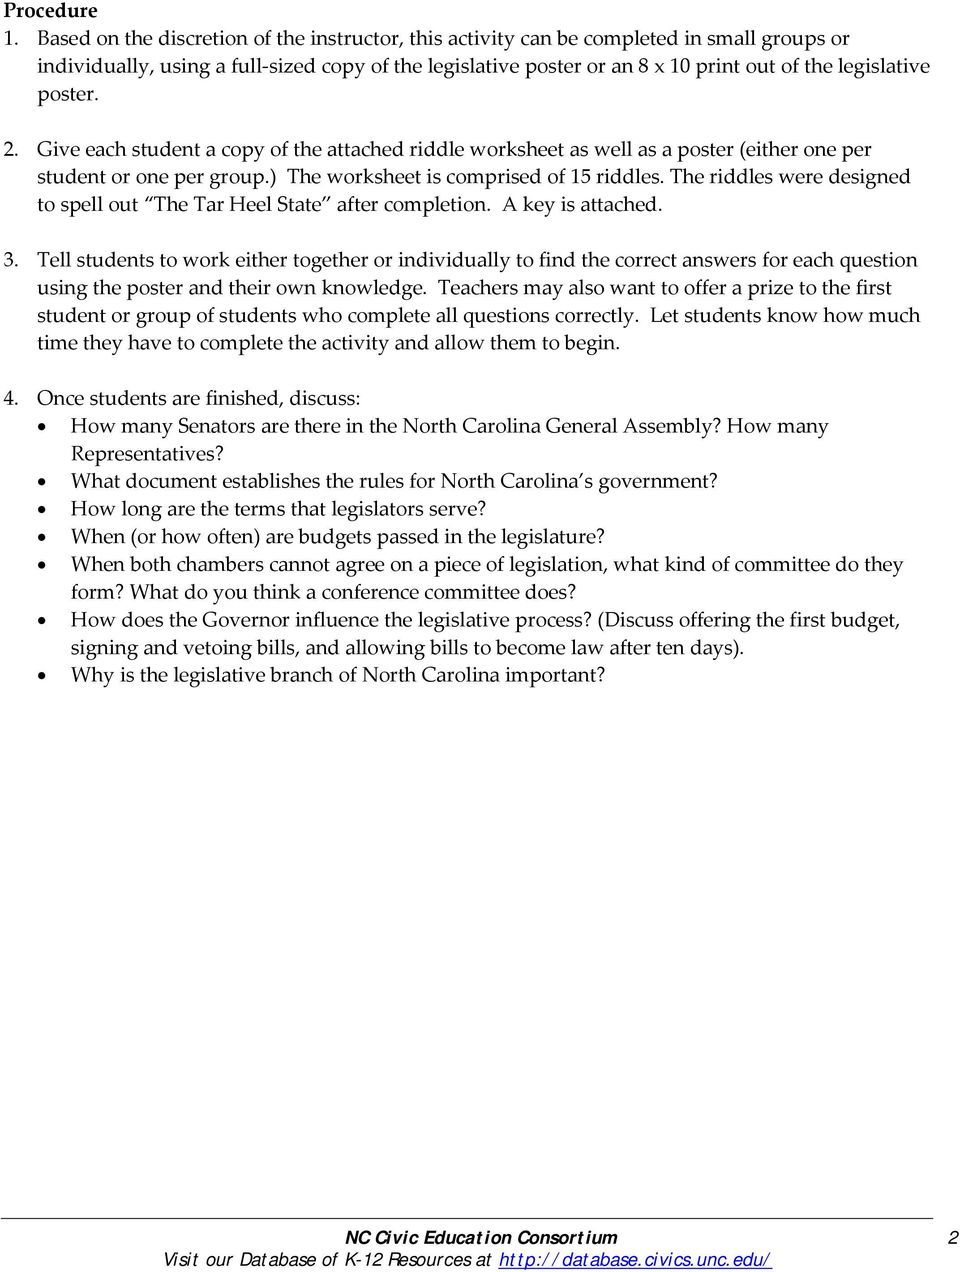 worksheet Legislative Branch Worksheet north carolina legislative branch poster riddles pdf give each student a copy of the attached riddle worksheet as well